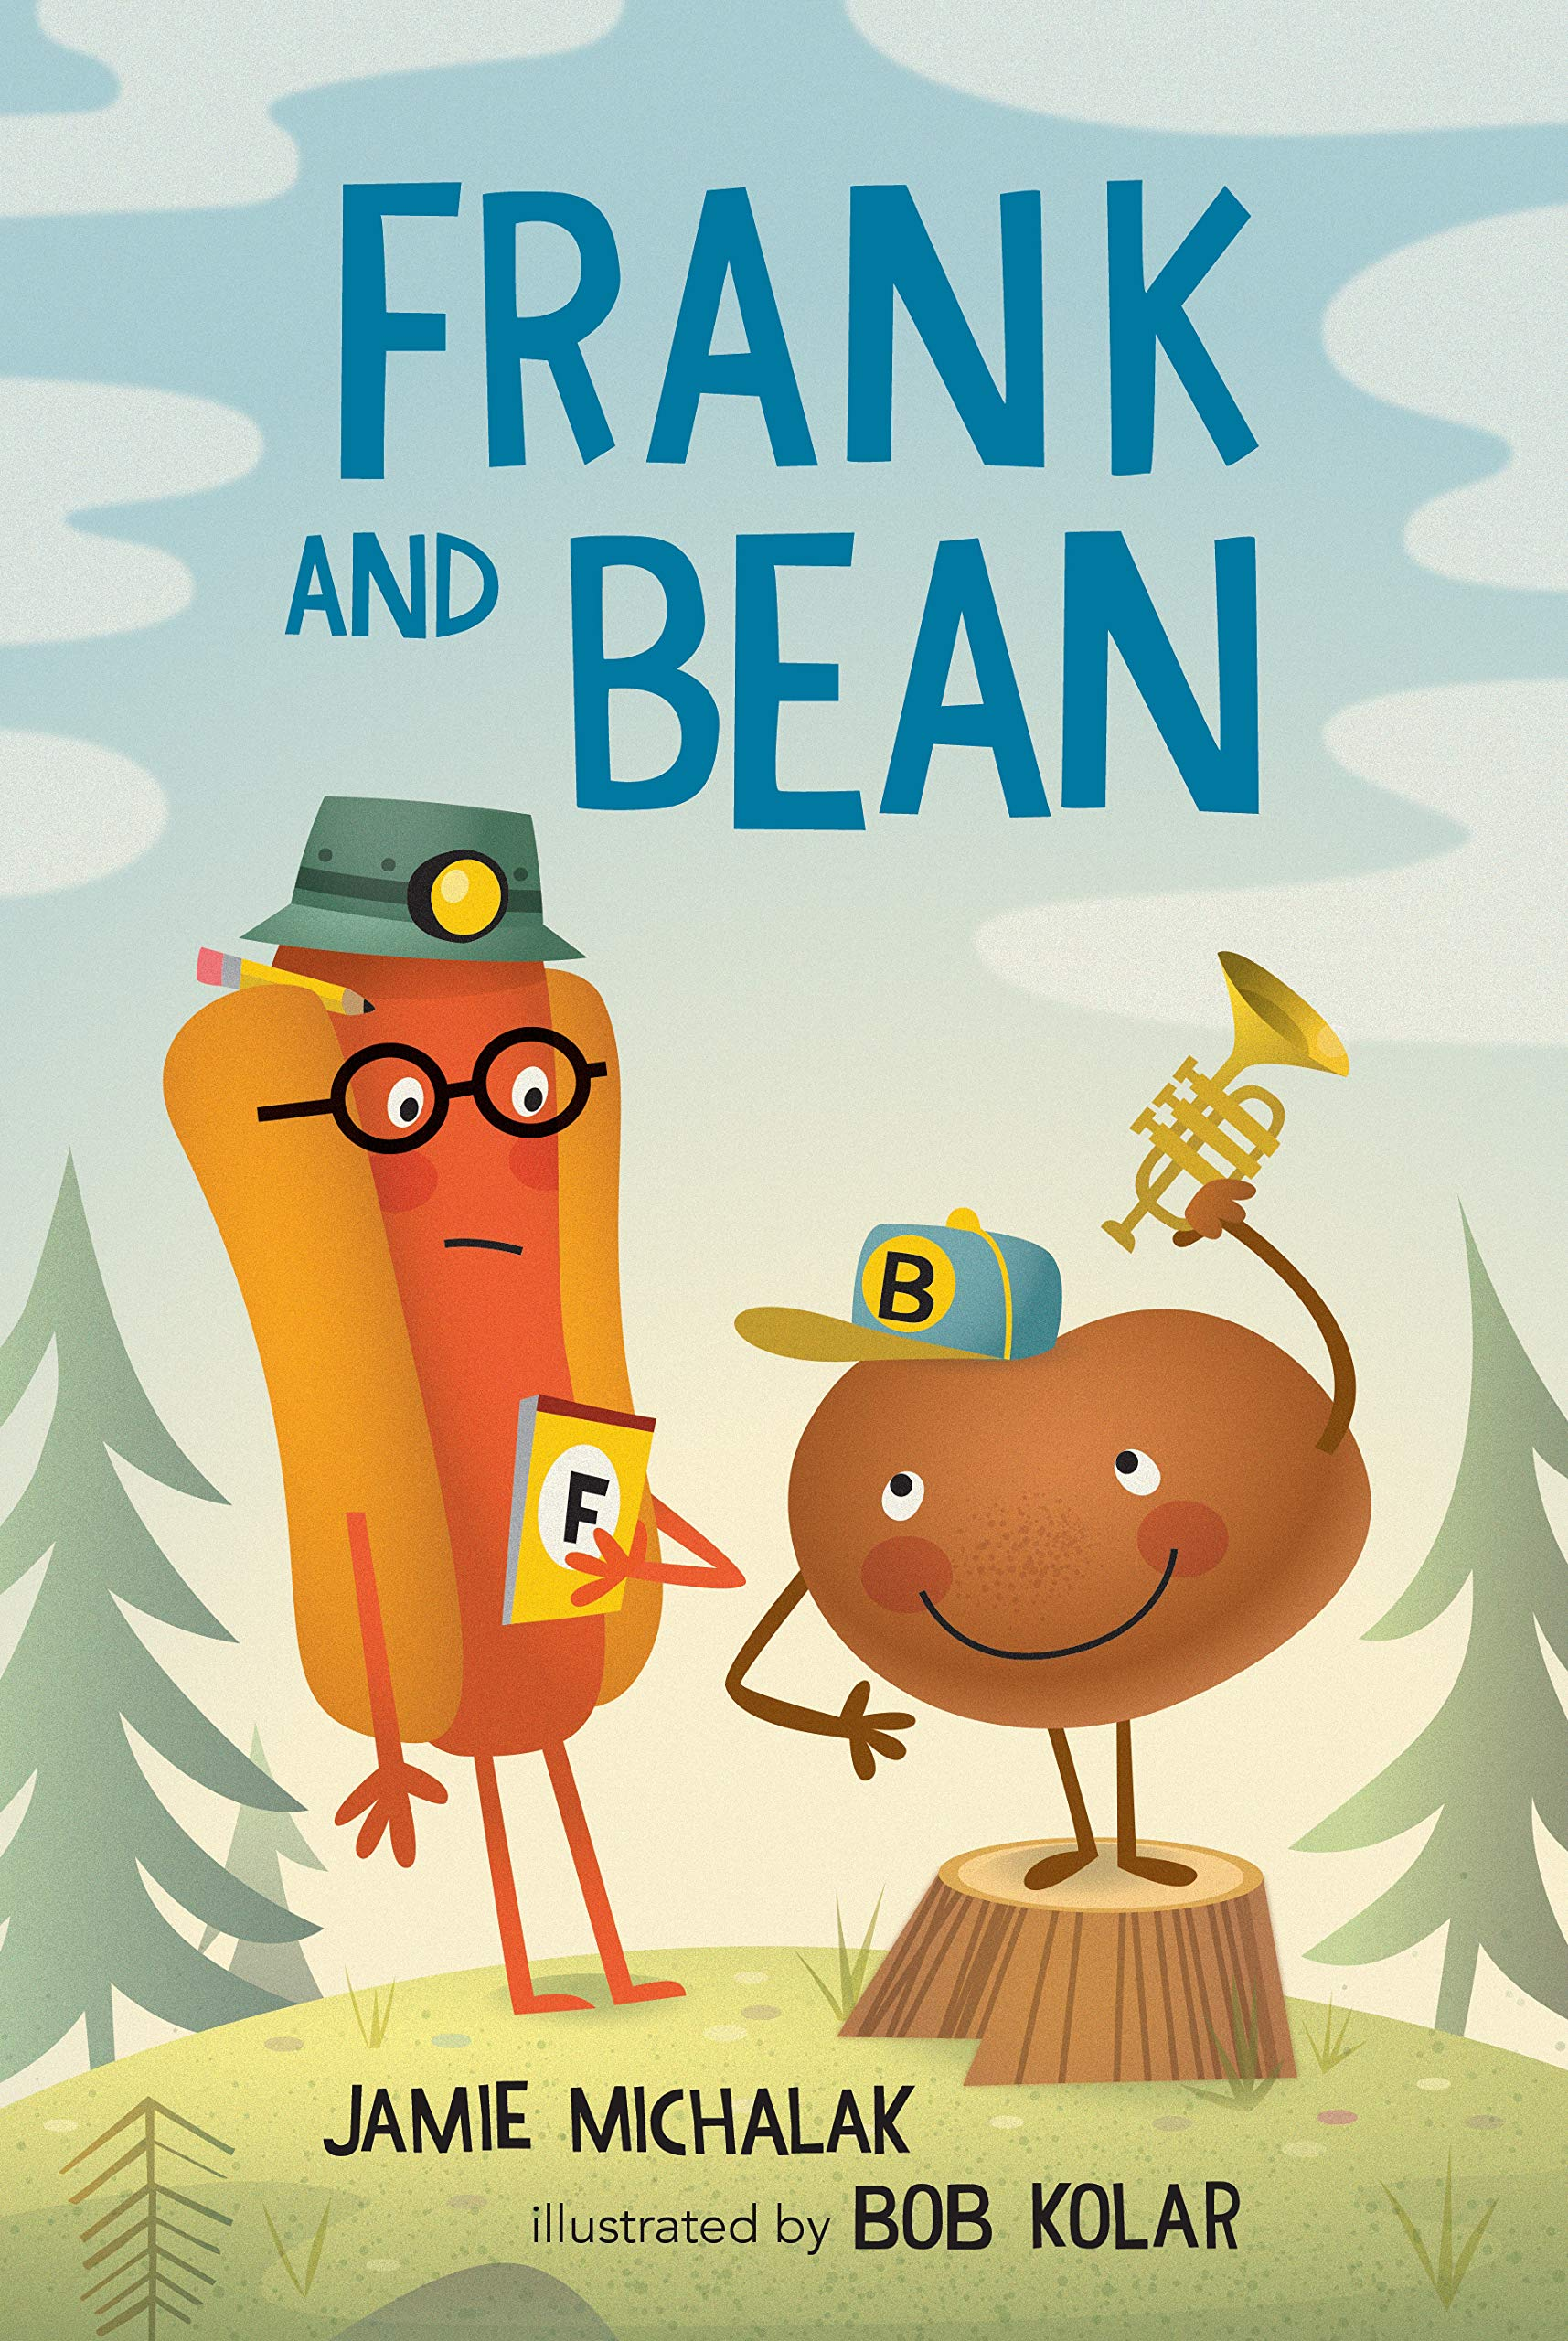 Image result for frank and bean jamie michalak